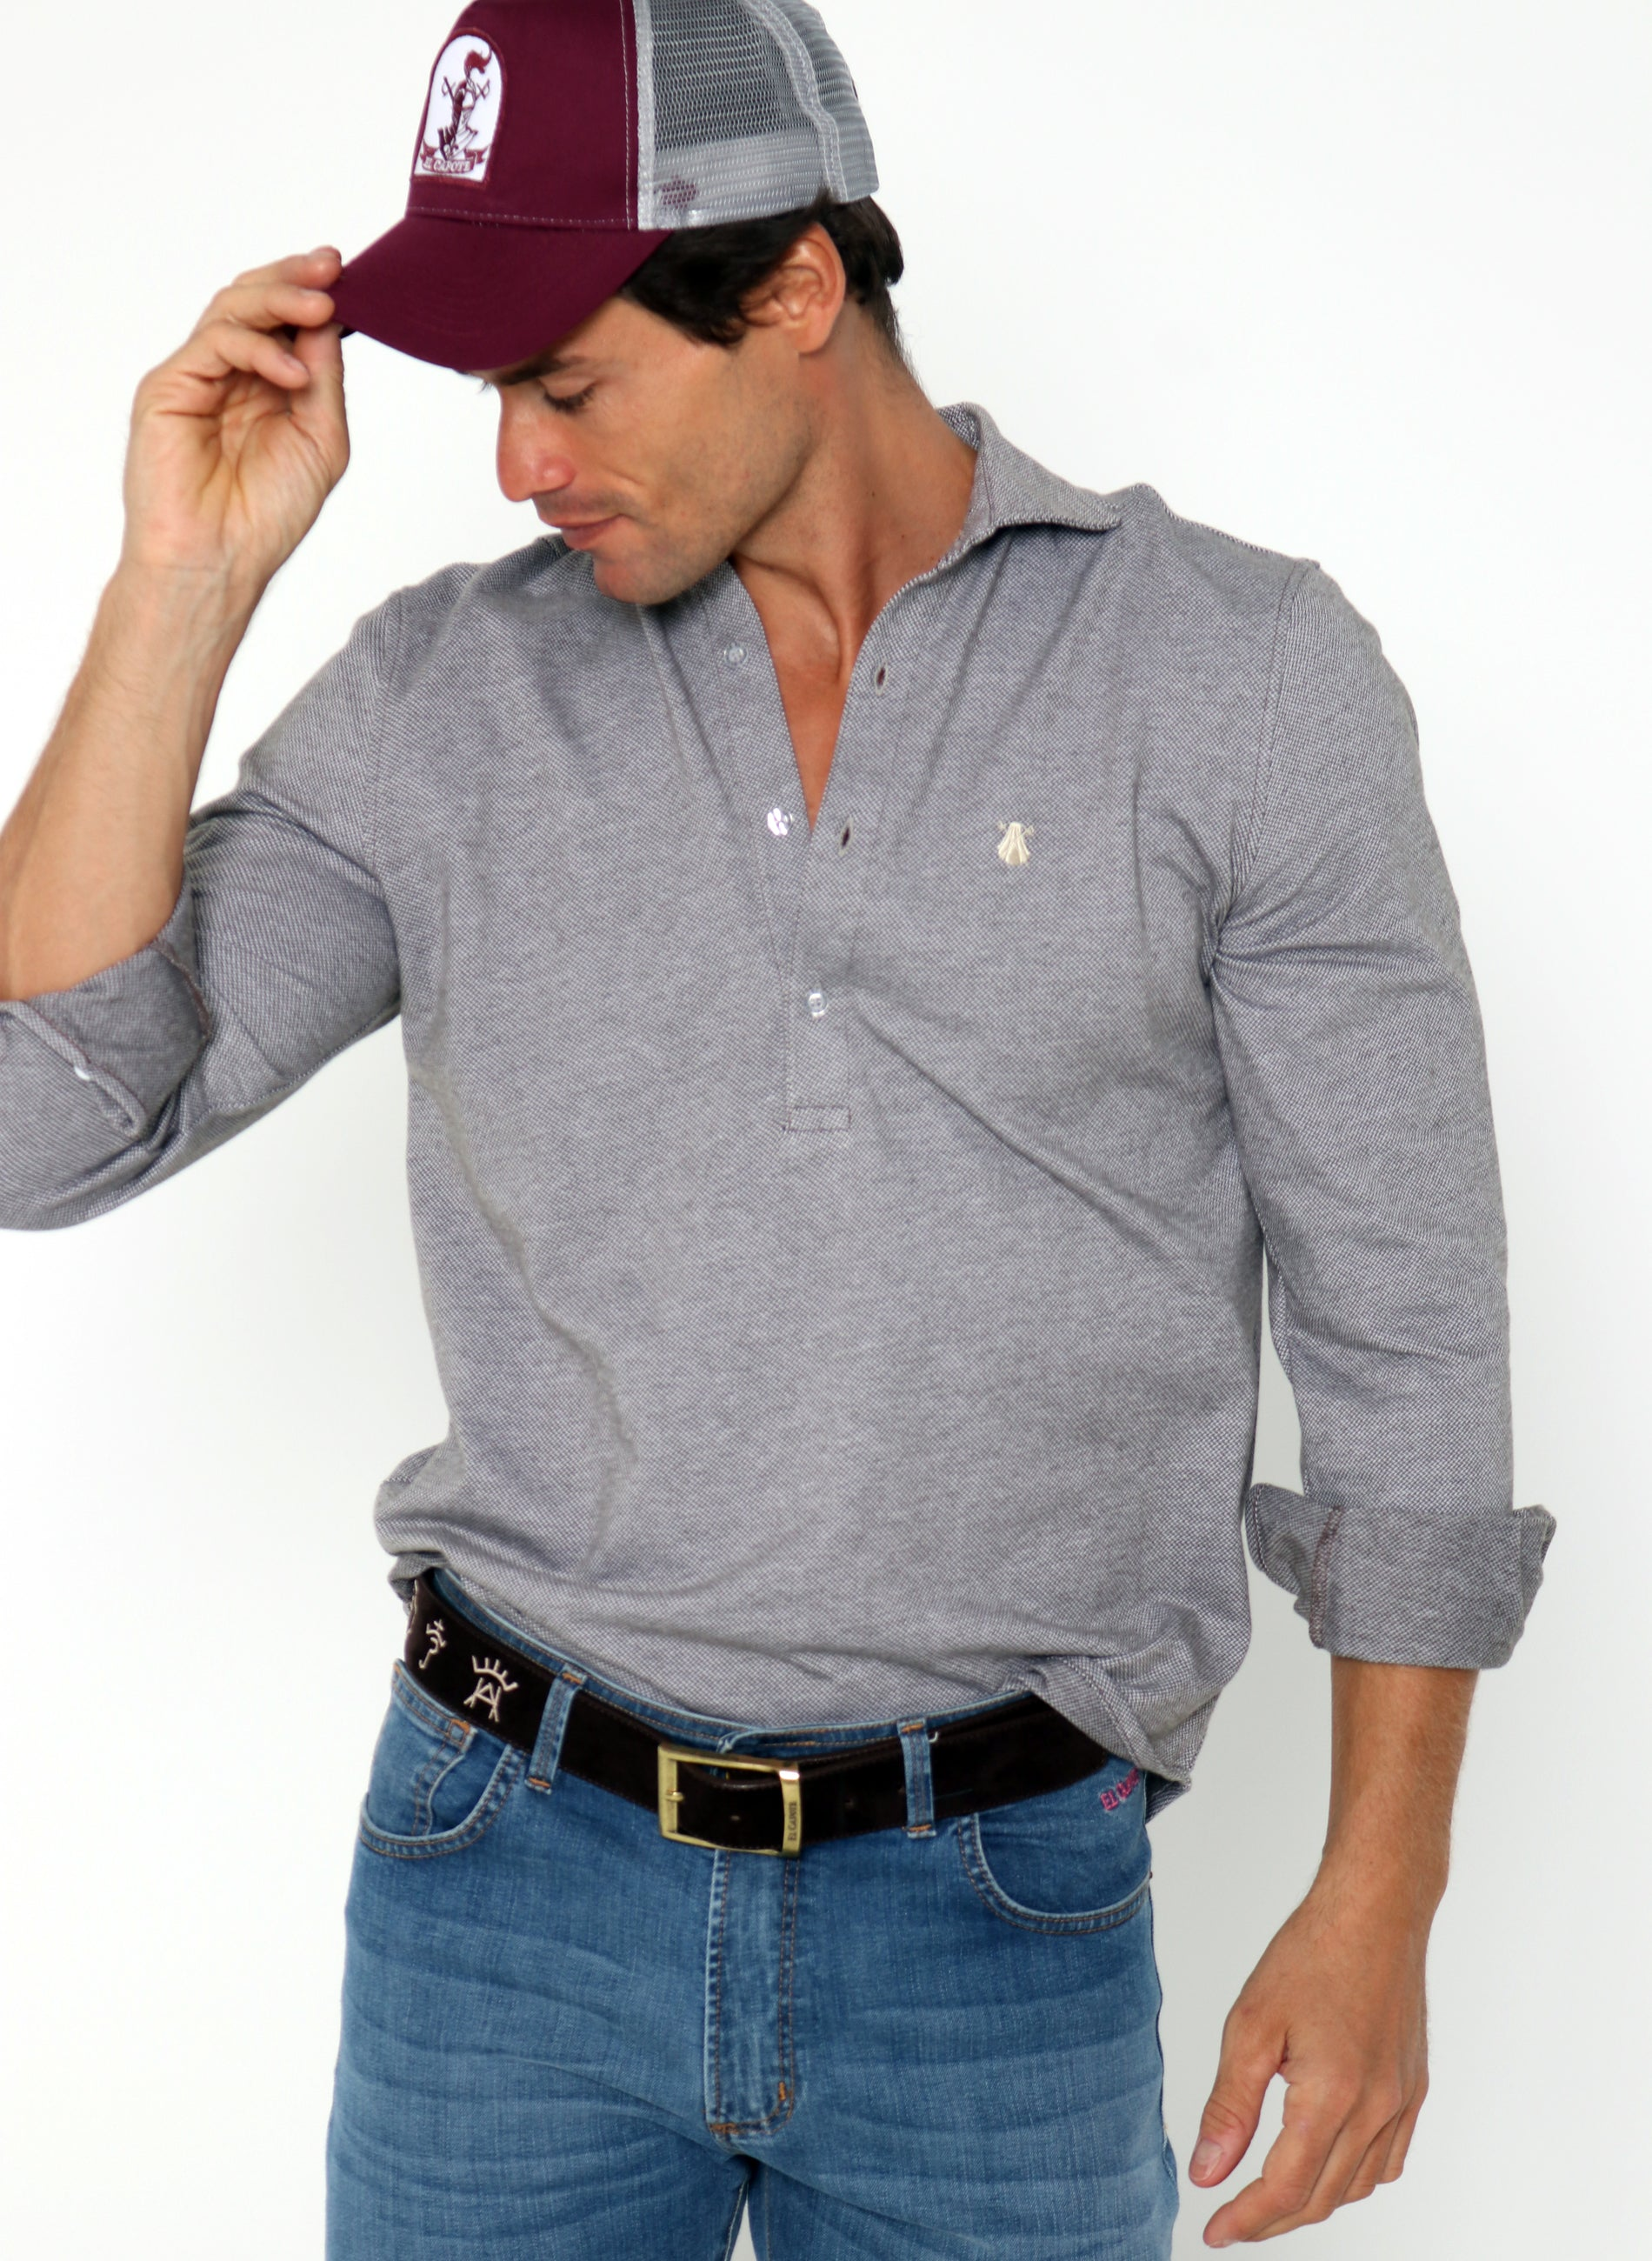 Men's Marbled Double Thread T-shirt